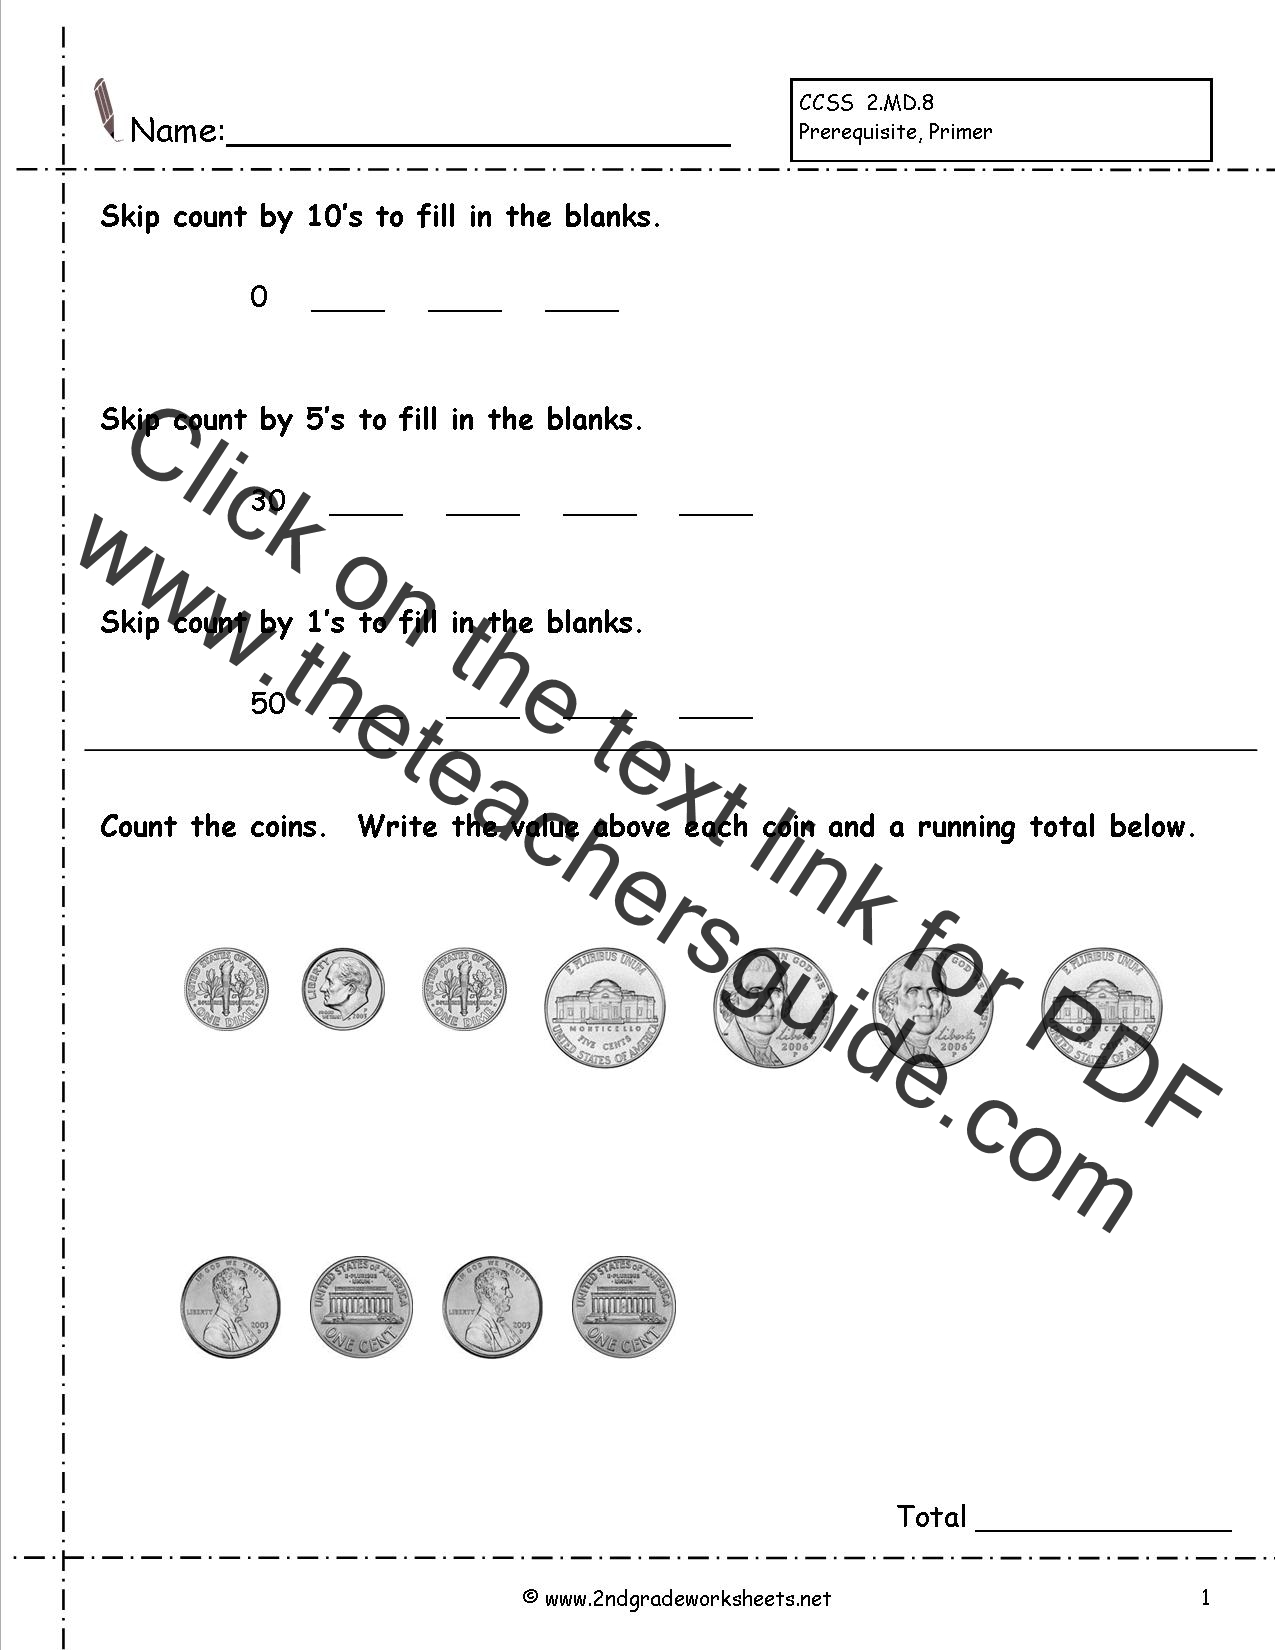 Counting Coins and Money Worksheets and Printouts – Money Counting Worksheets